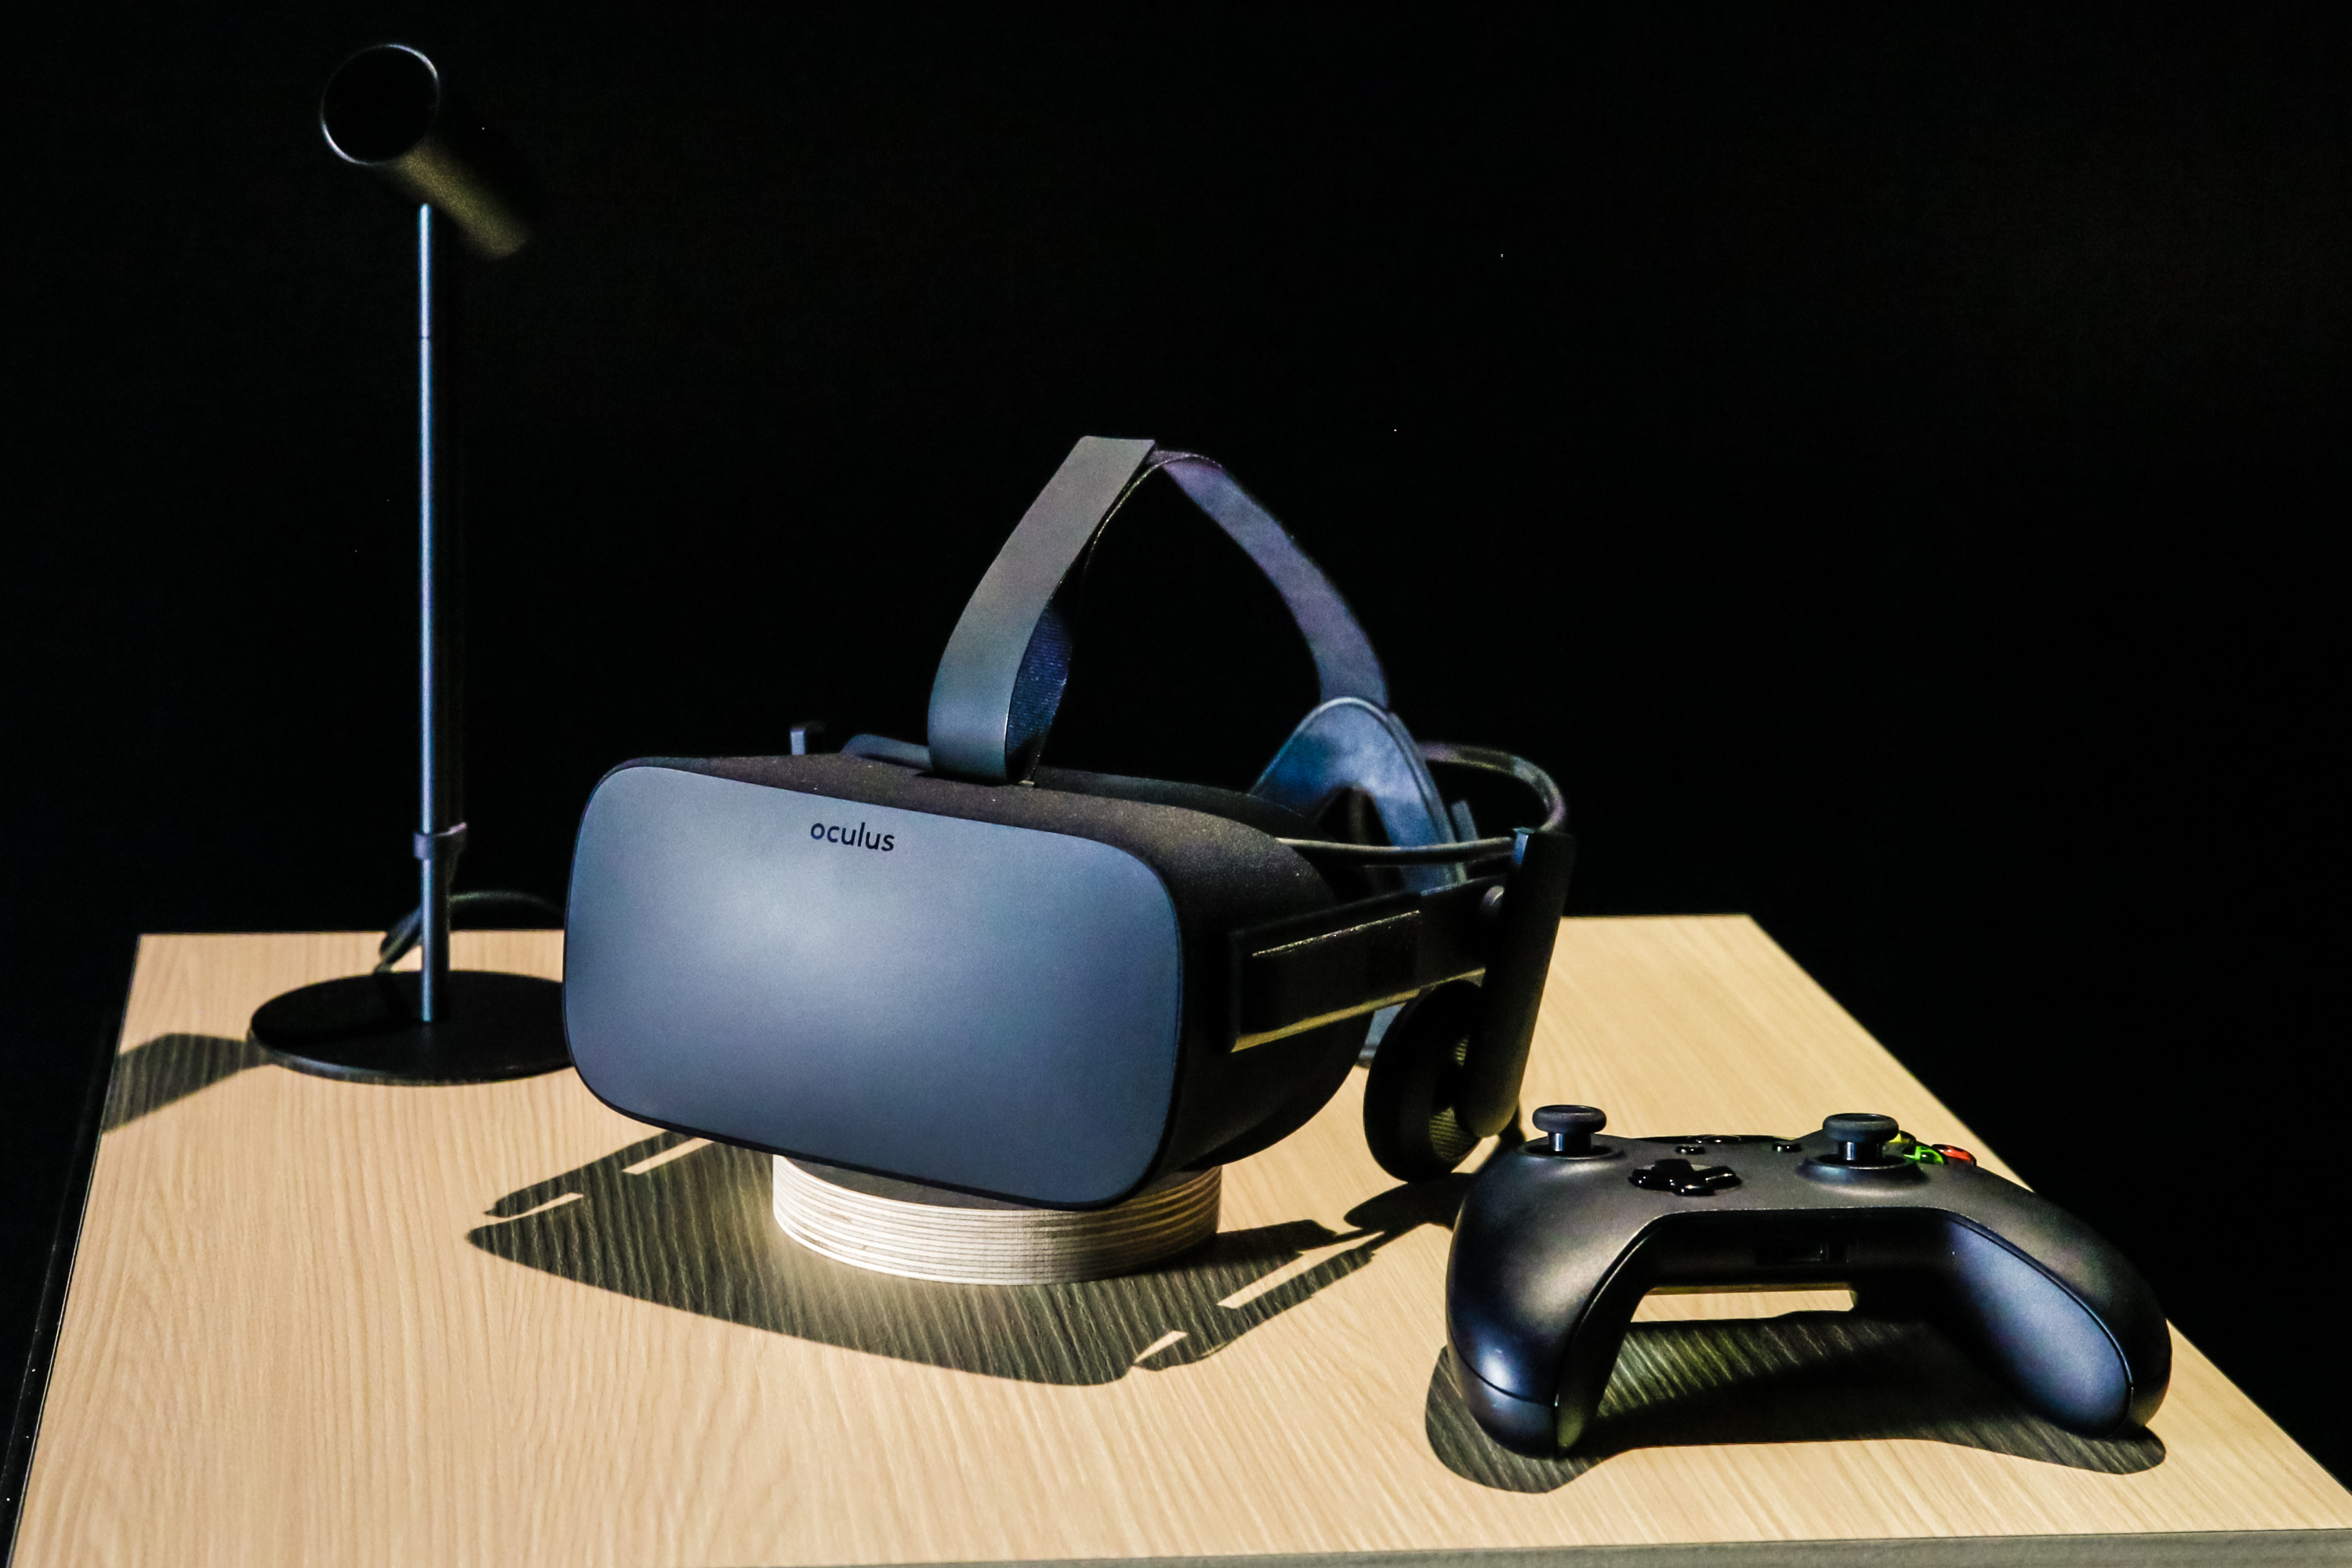 oculus-rift-oculus-touch-virtual-reality-8523.jpg